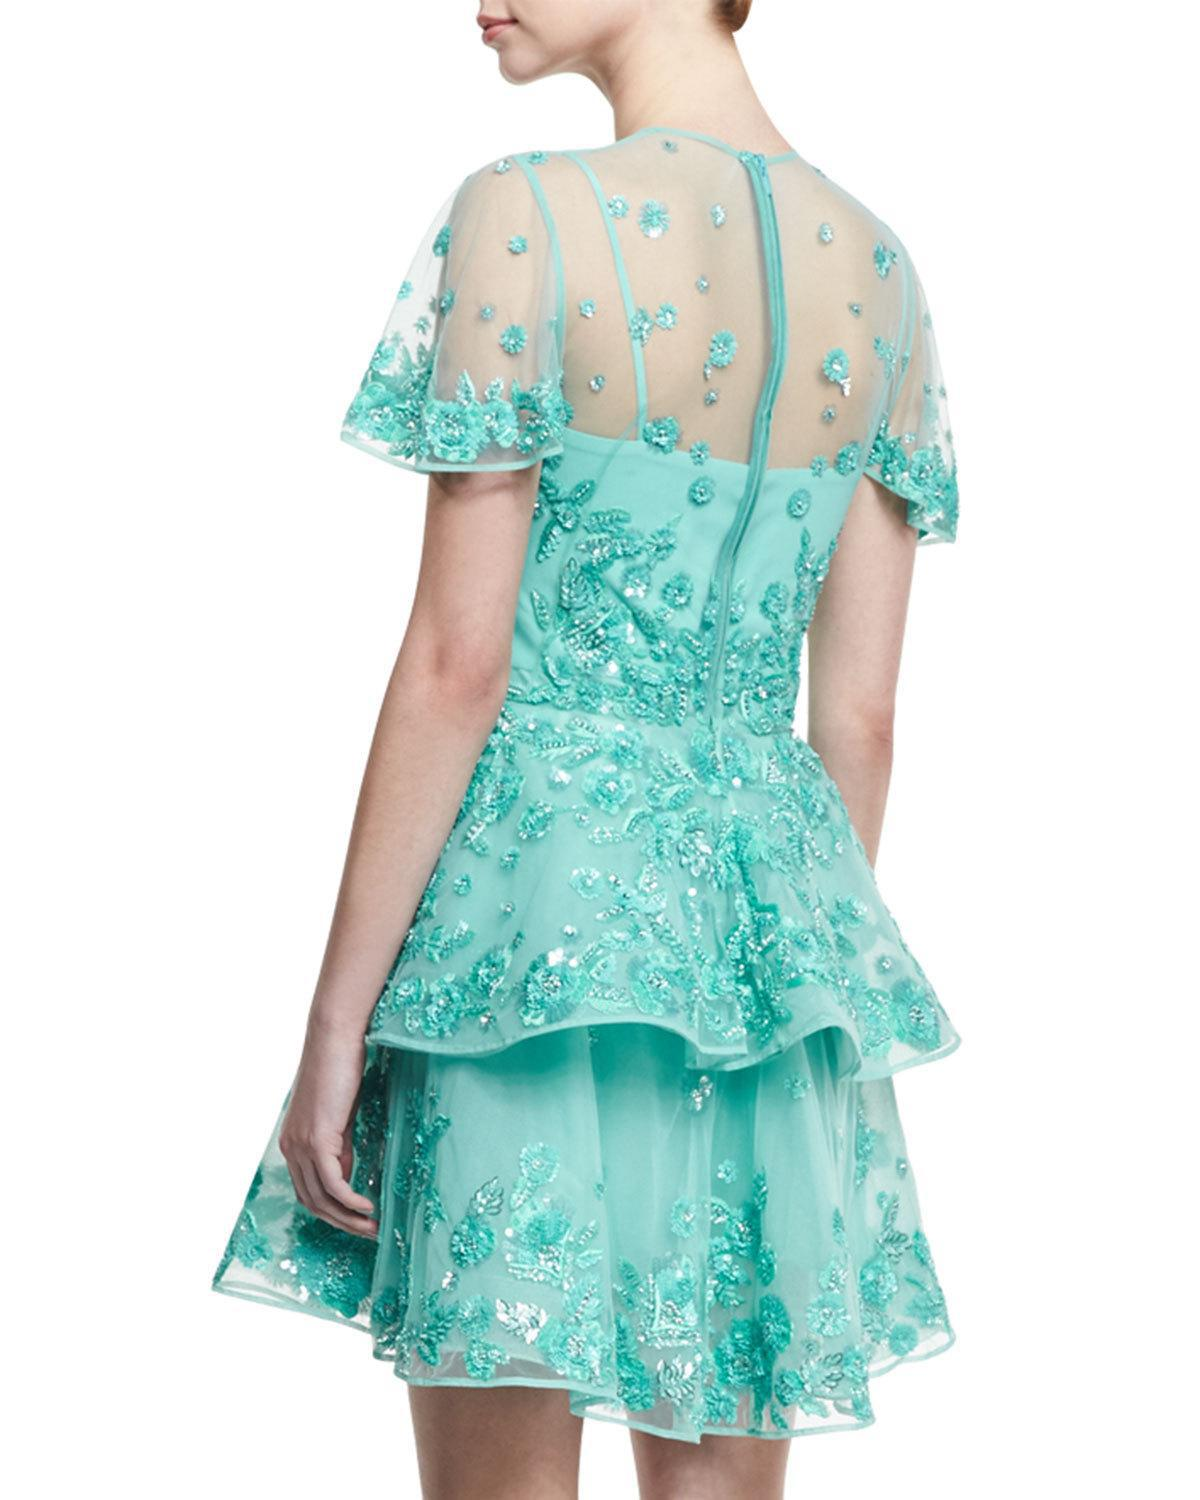 Lyst - Zuhair Murad Beaded Tulle Fit & Flare Party Dress in Blue